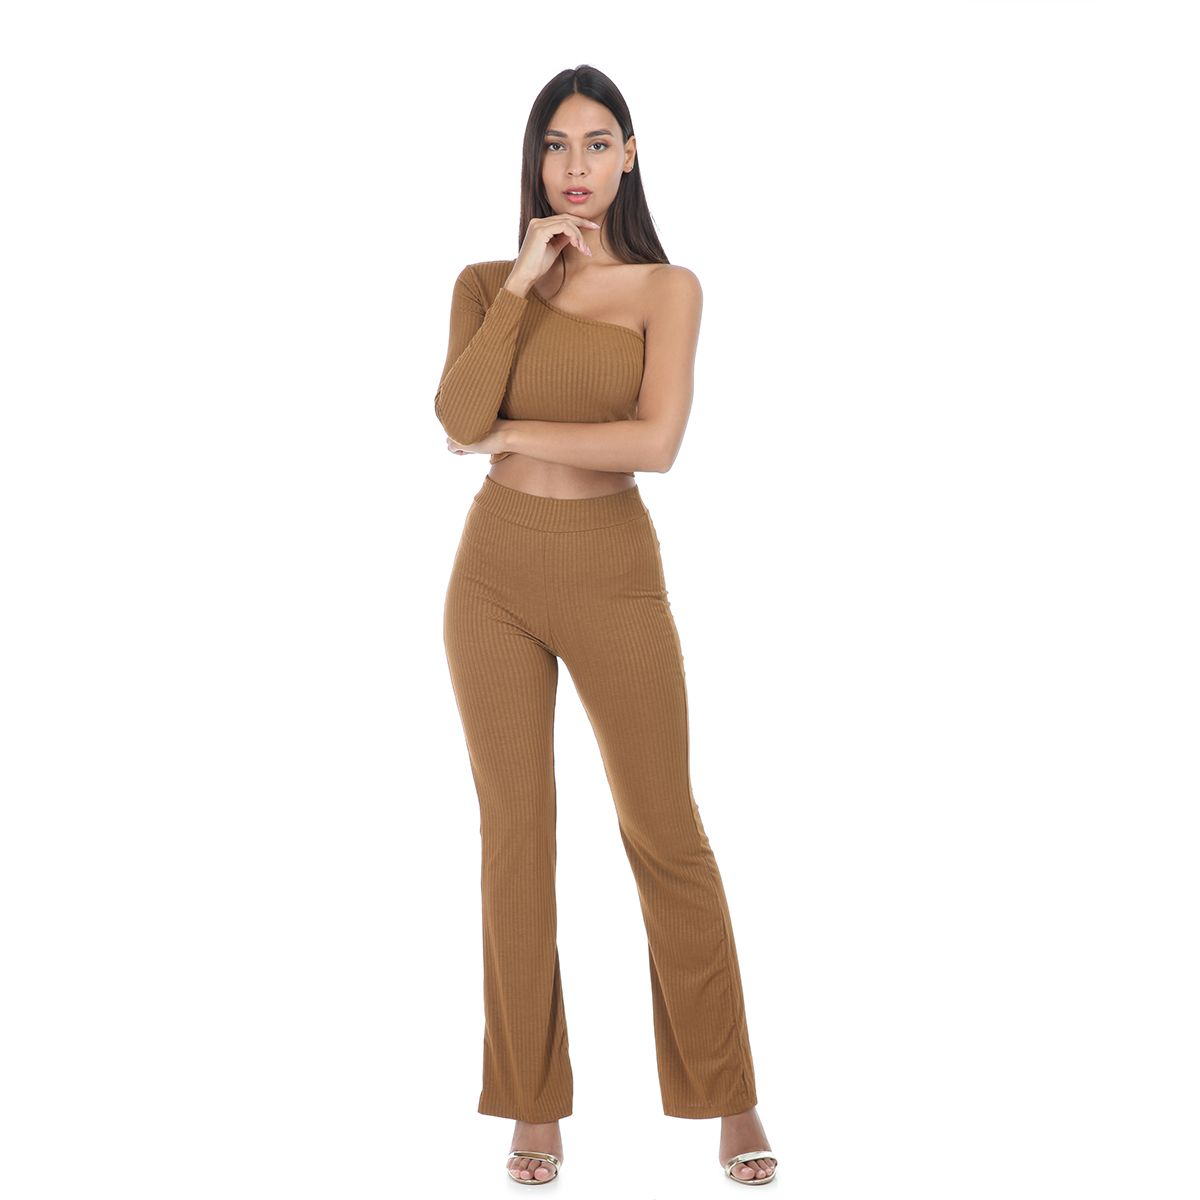 Ensemble pantalon camel côtelé avec top one shoulder